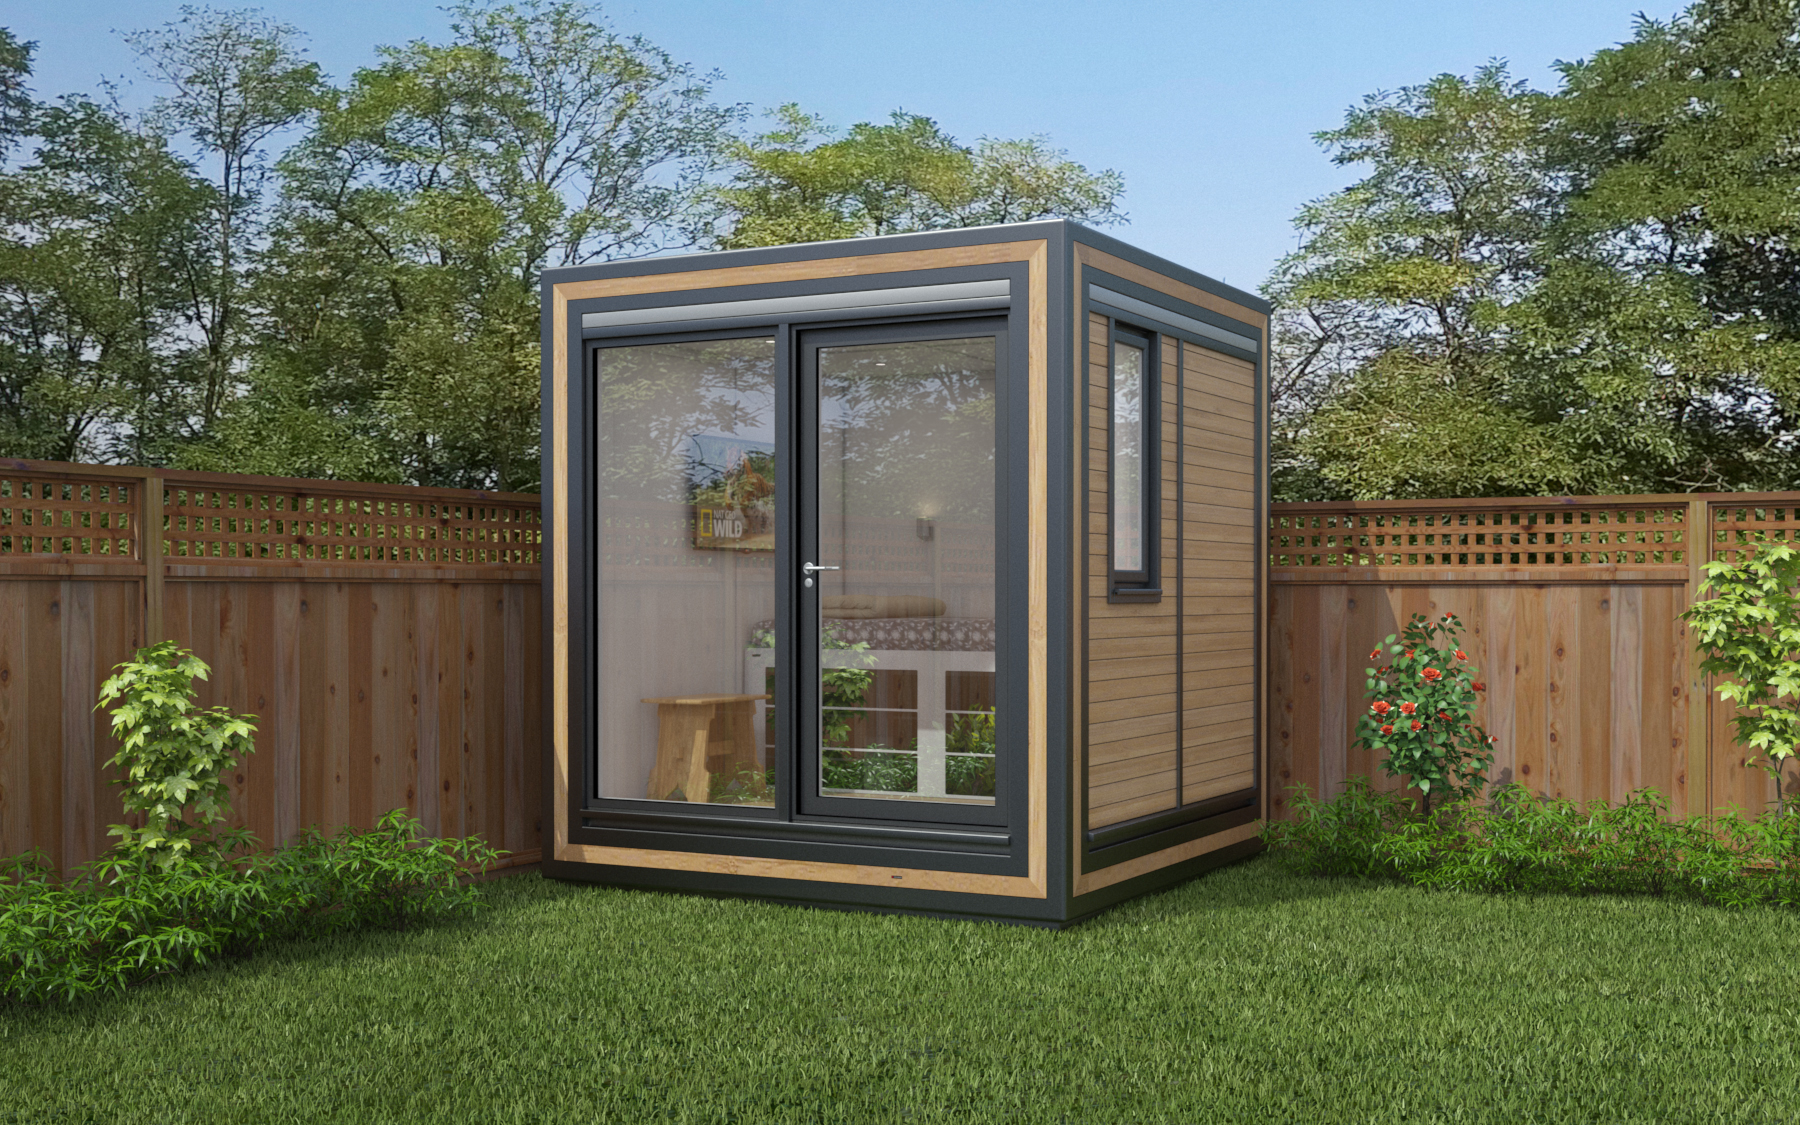 ZEDBOX 220  (2 x 2)  Internal Size: 2117x 2117  External Size: 2587 x 2587  Bed Options: Single  Kitchen Options: No  Wet Room Options: No  Portico: No  Price:  £14,000    Optional Extras    Request Zedbox Catalogue